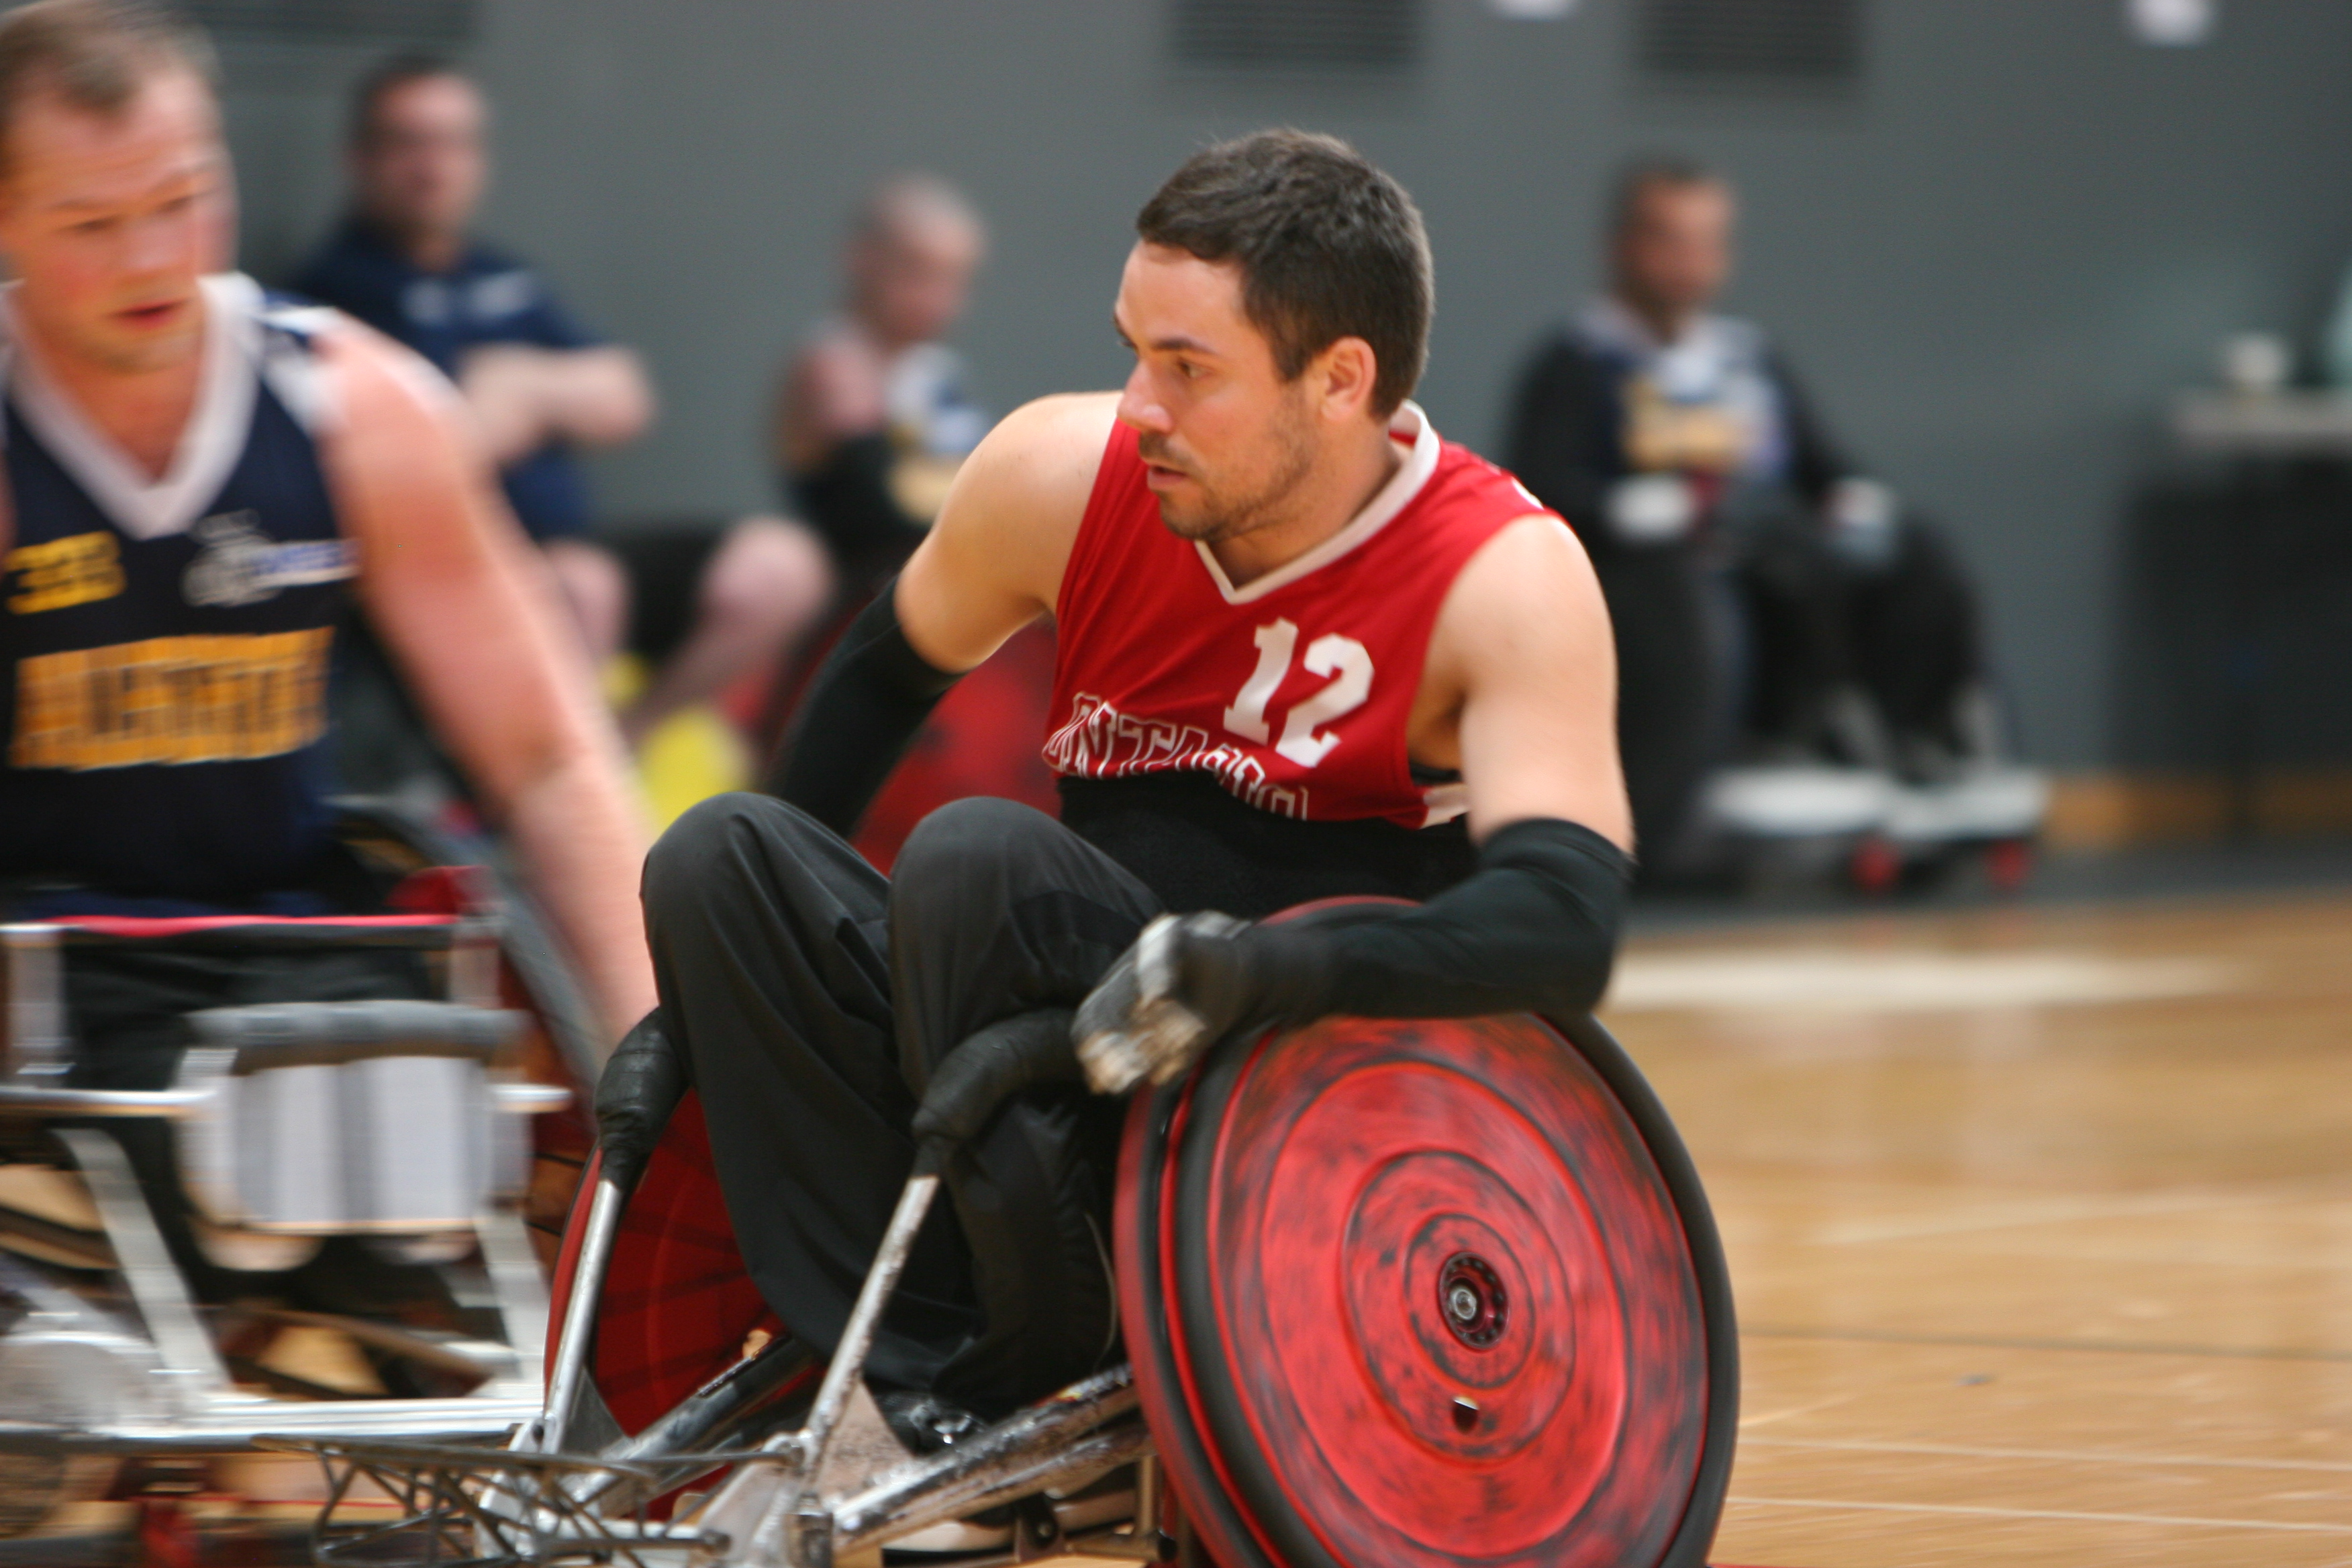 Wheelchair Rugby Modifications, Wheelchair Rugby, Wheelchair Rugby Modifications